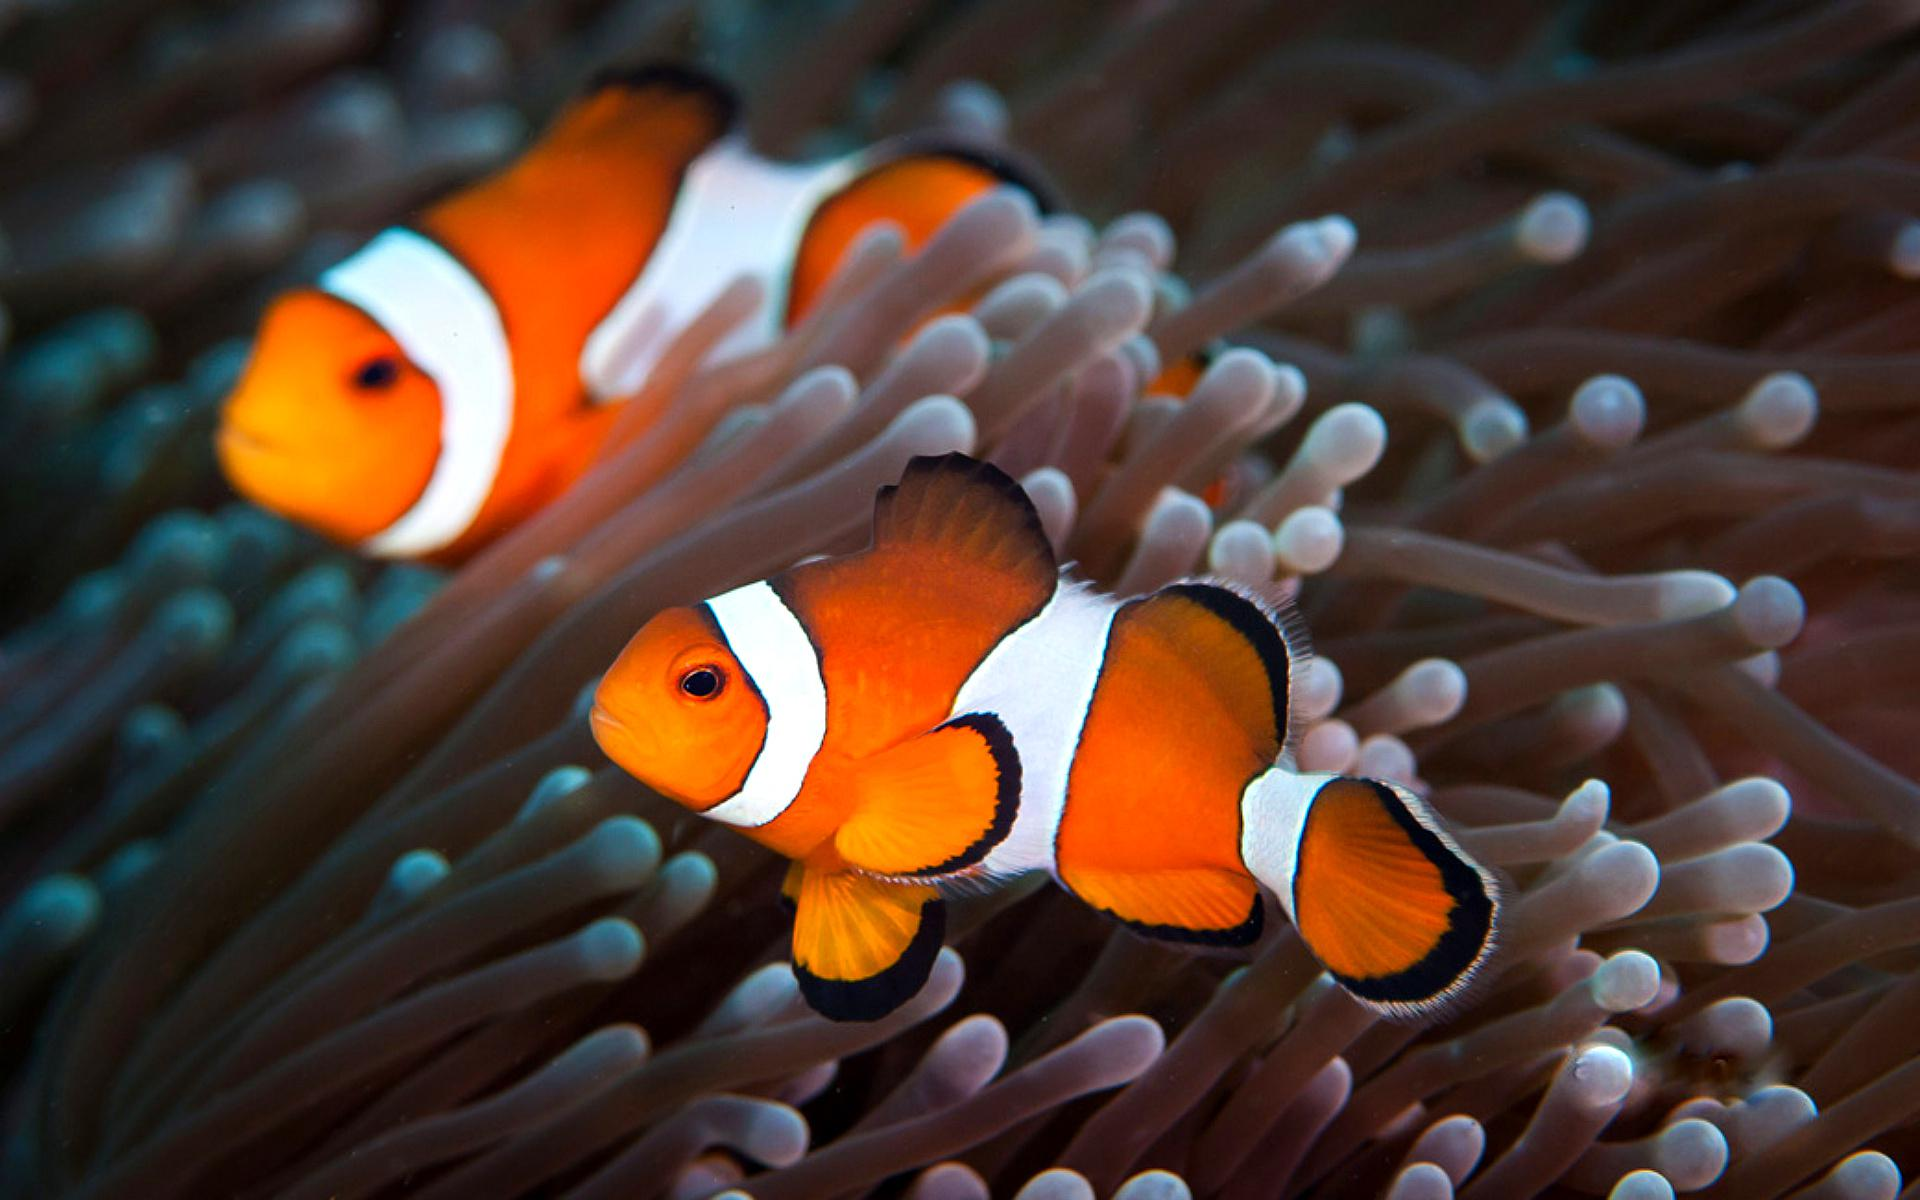 Clownfish pictures wallpaper 1920x1200 12279 for What do clown fish eat